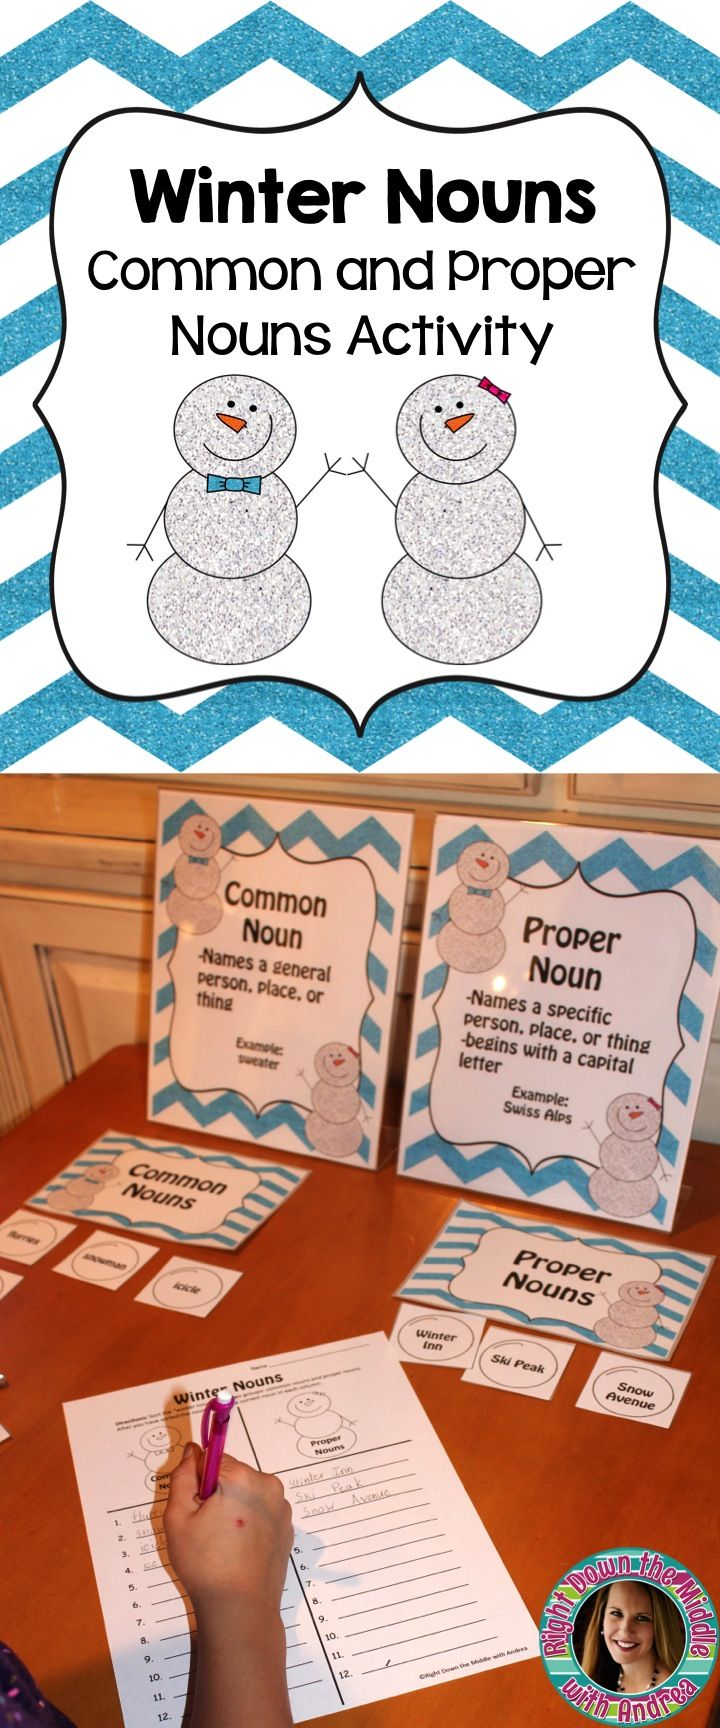 Winter Nouns...Students will practice sorting nouns into common nouns or proper nouns. There is a center activity complete with center cards, recording sheet, and answer key. -Right Down the Middle with Andrea